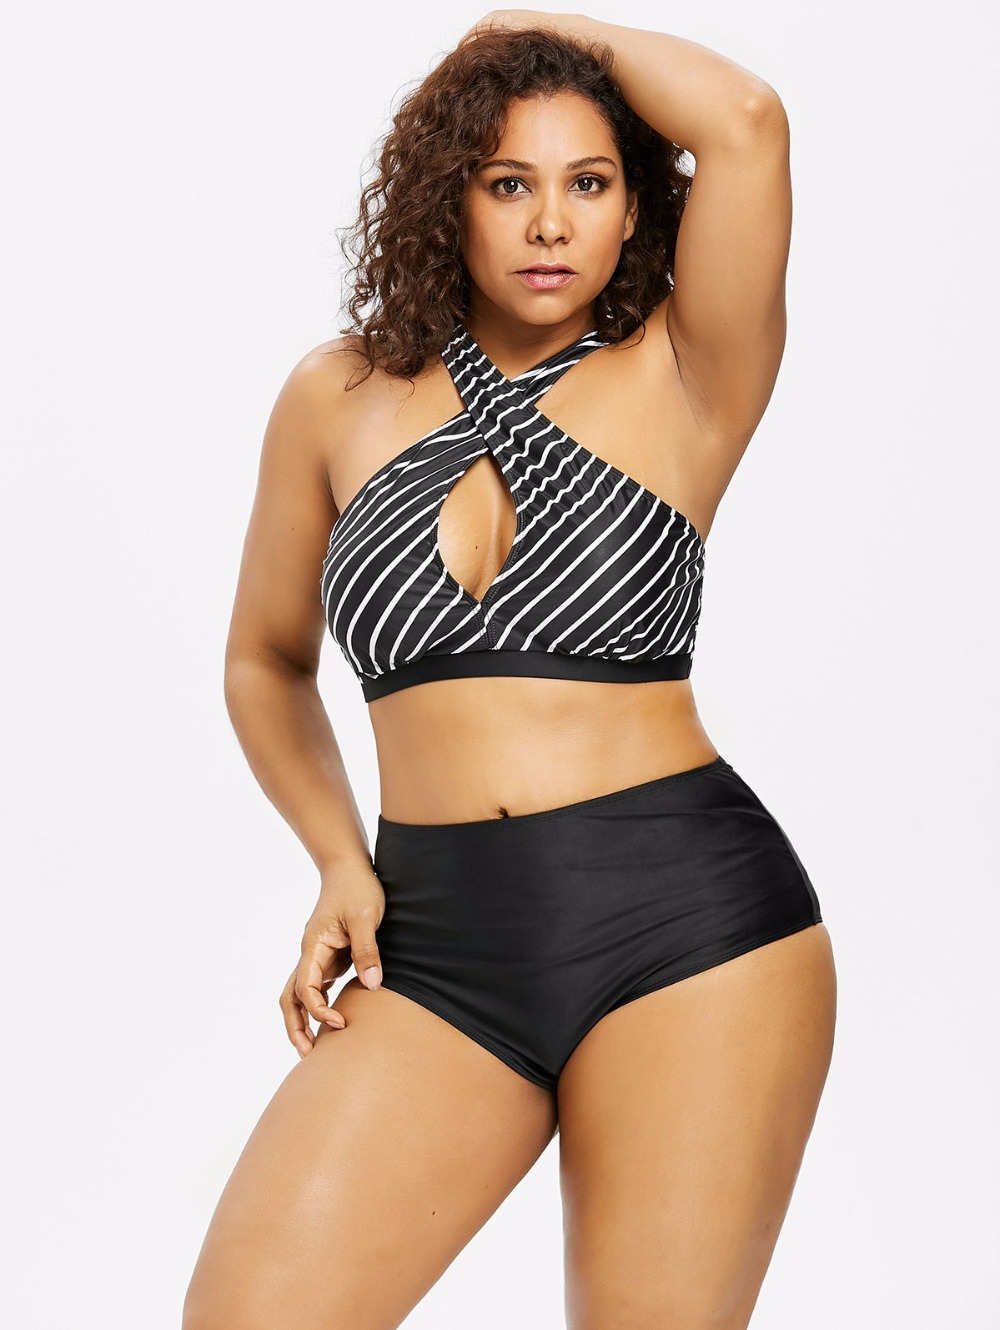 <font><b>2018</b></font> <font><b>Plus</b></font> <font><b>Size</b></font> Striped Bikini Set <font><b>Push</b></font> <font><b>Up</b></font> <font><b>Swimwear</b></font> Women Floral Print <font><b>Large</b></font> Brazilian Swimsuit <font><b>Sexy</b></font> Bandage Ruffle bathing suit image